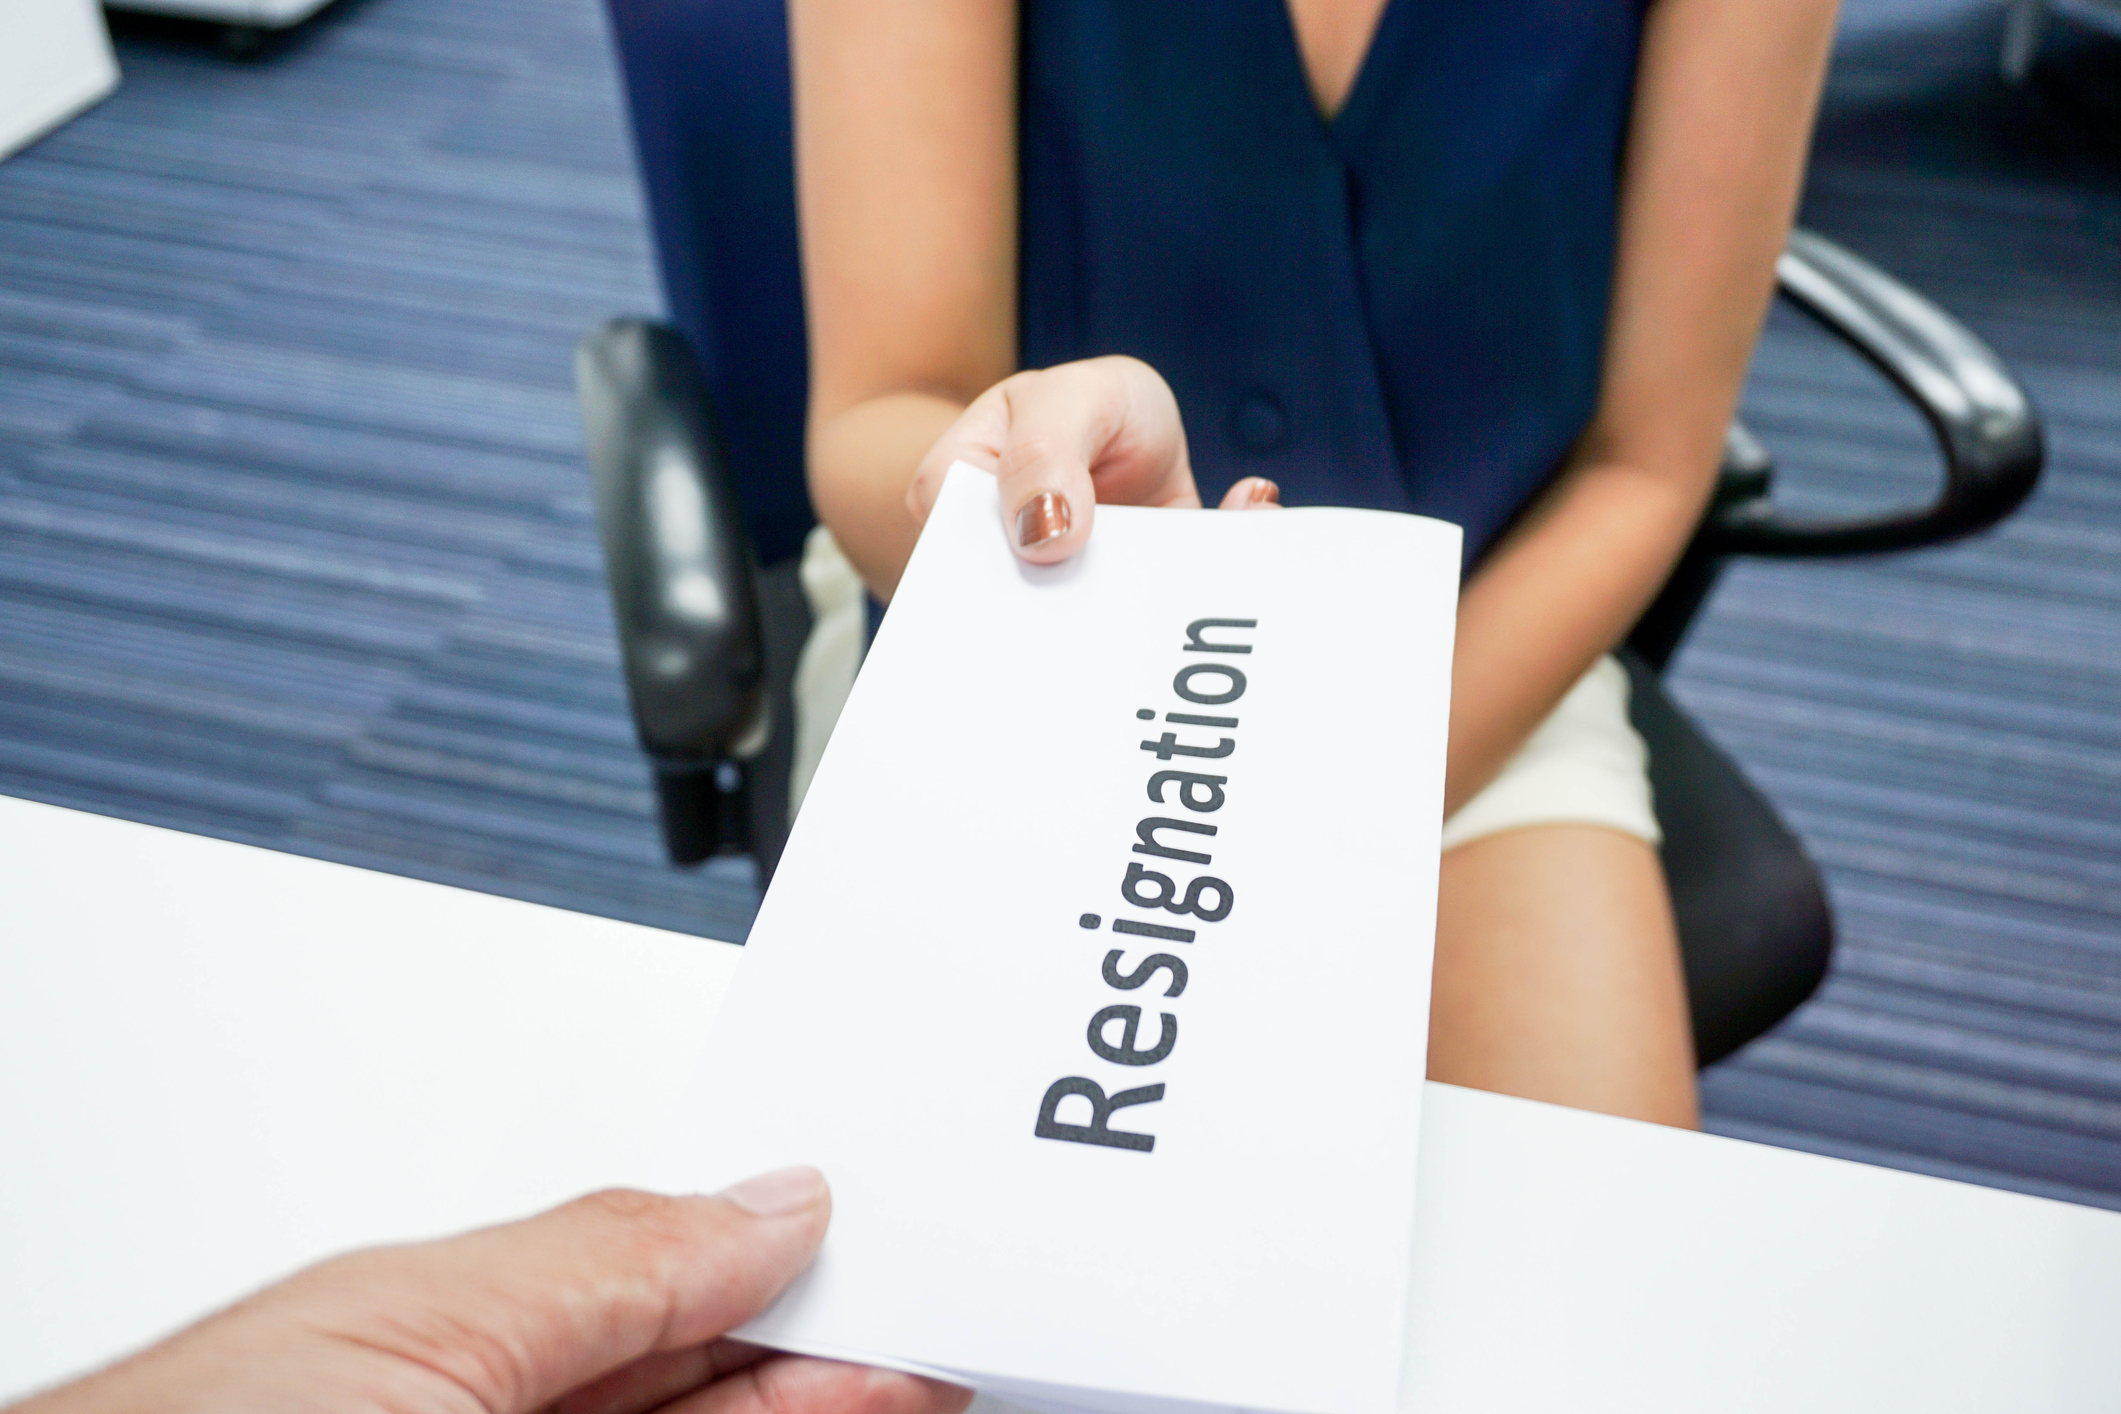 There Are Many Reasons That Nonprofit Board Directors Accept A Board Position And Then Resign Before Their Term Is Over. When Resigning From The Board, It's Important To Leave In The Appropriate Way.